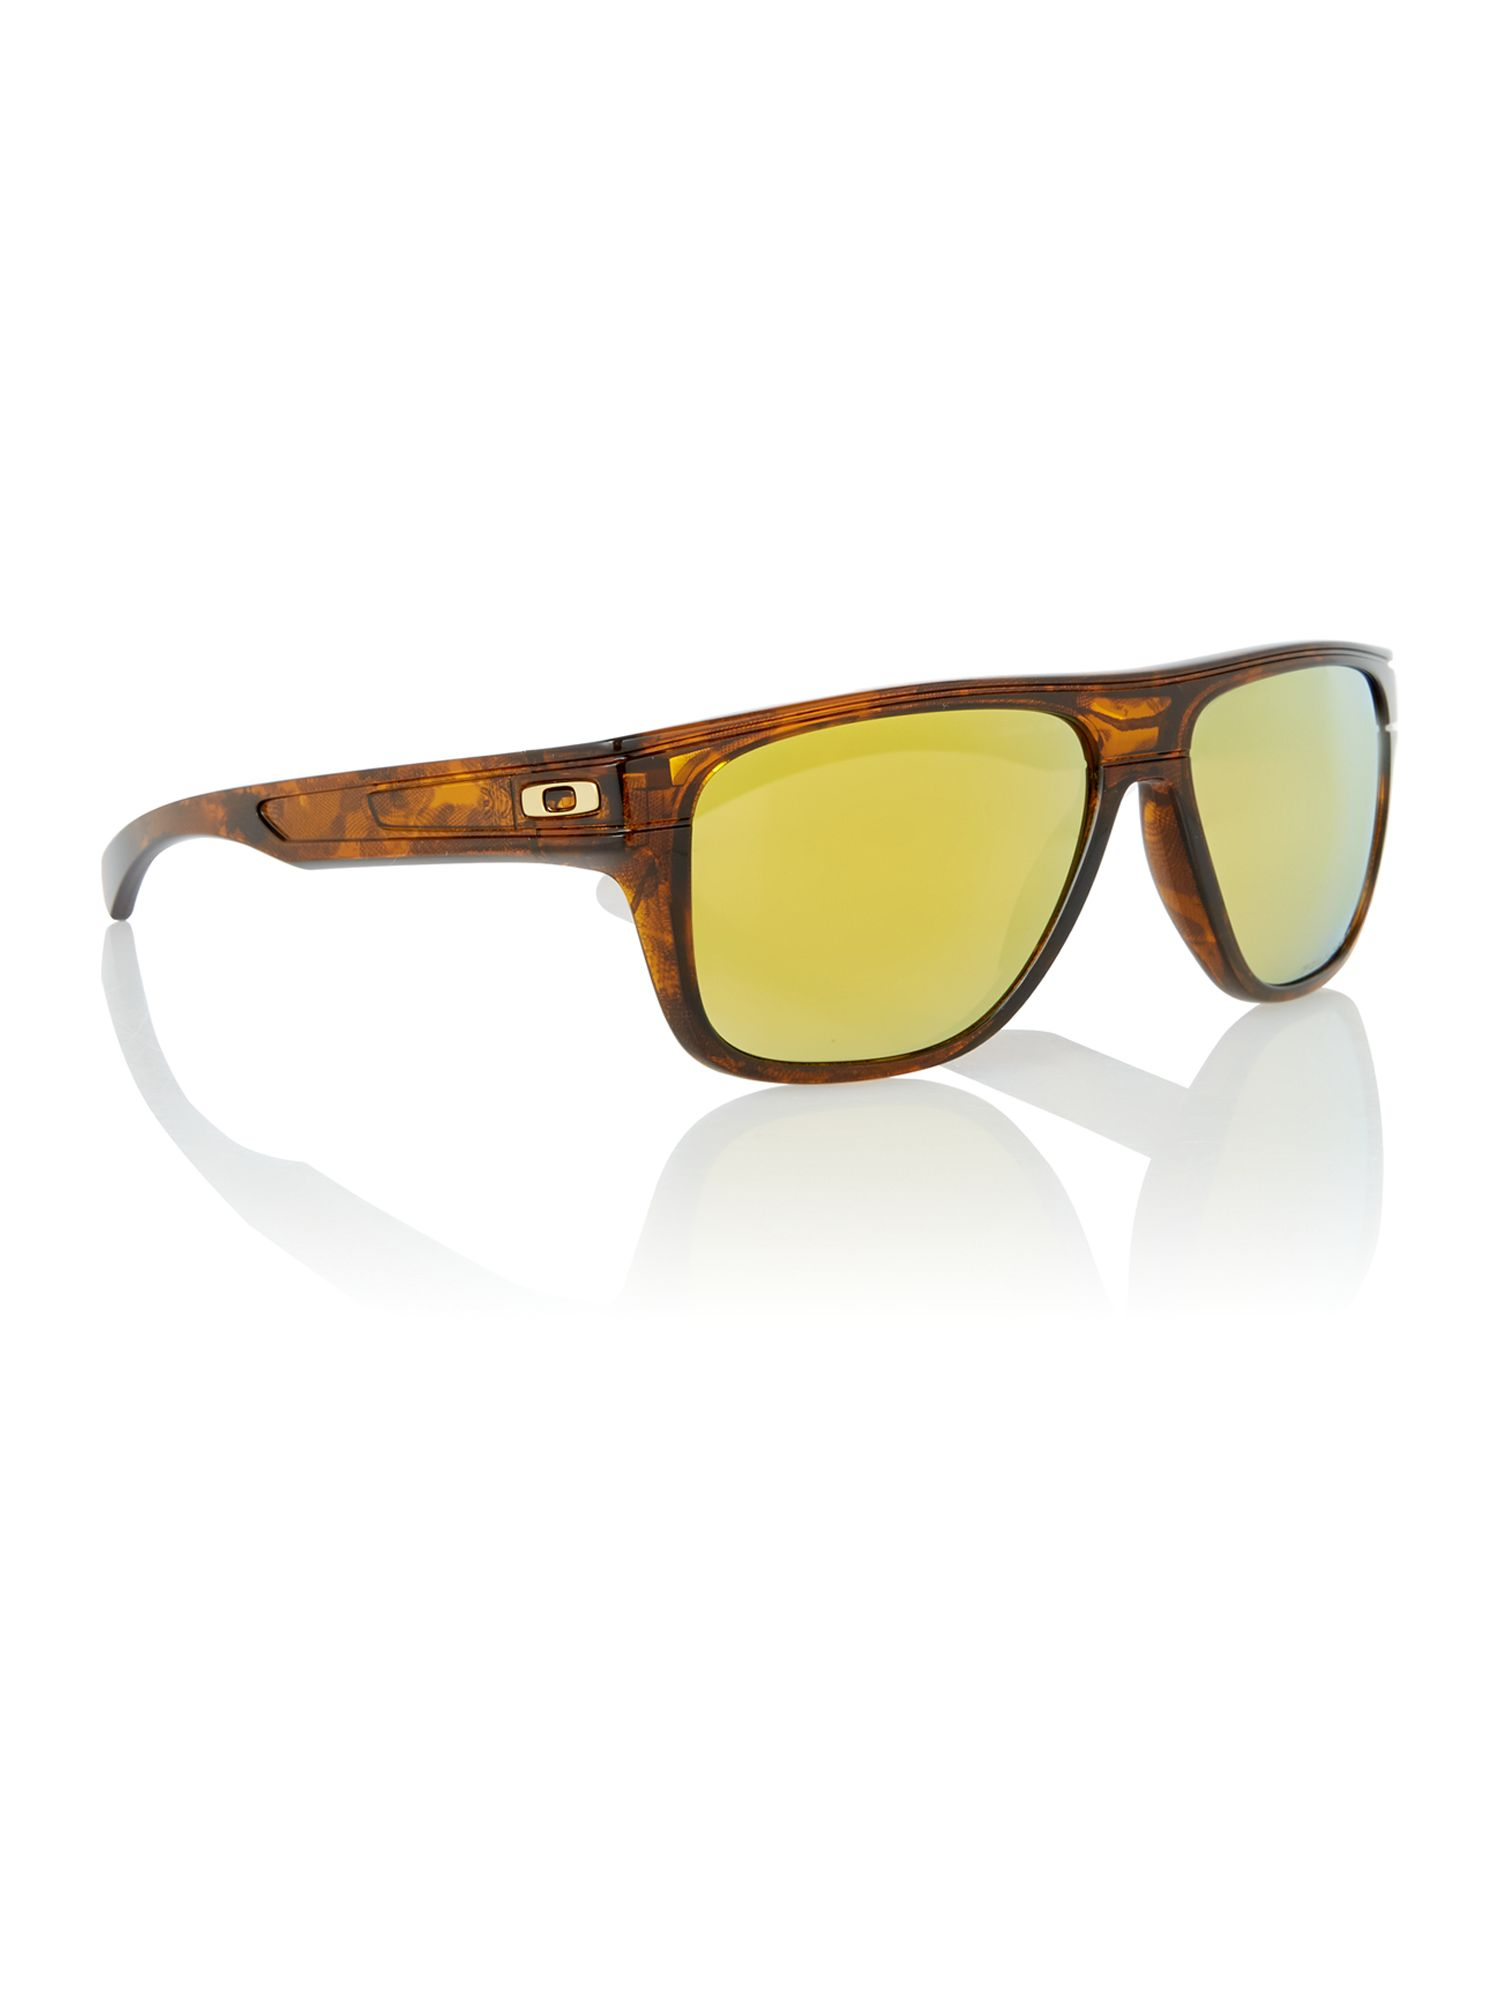 Men`s 0oo9199 sunglasses